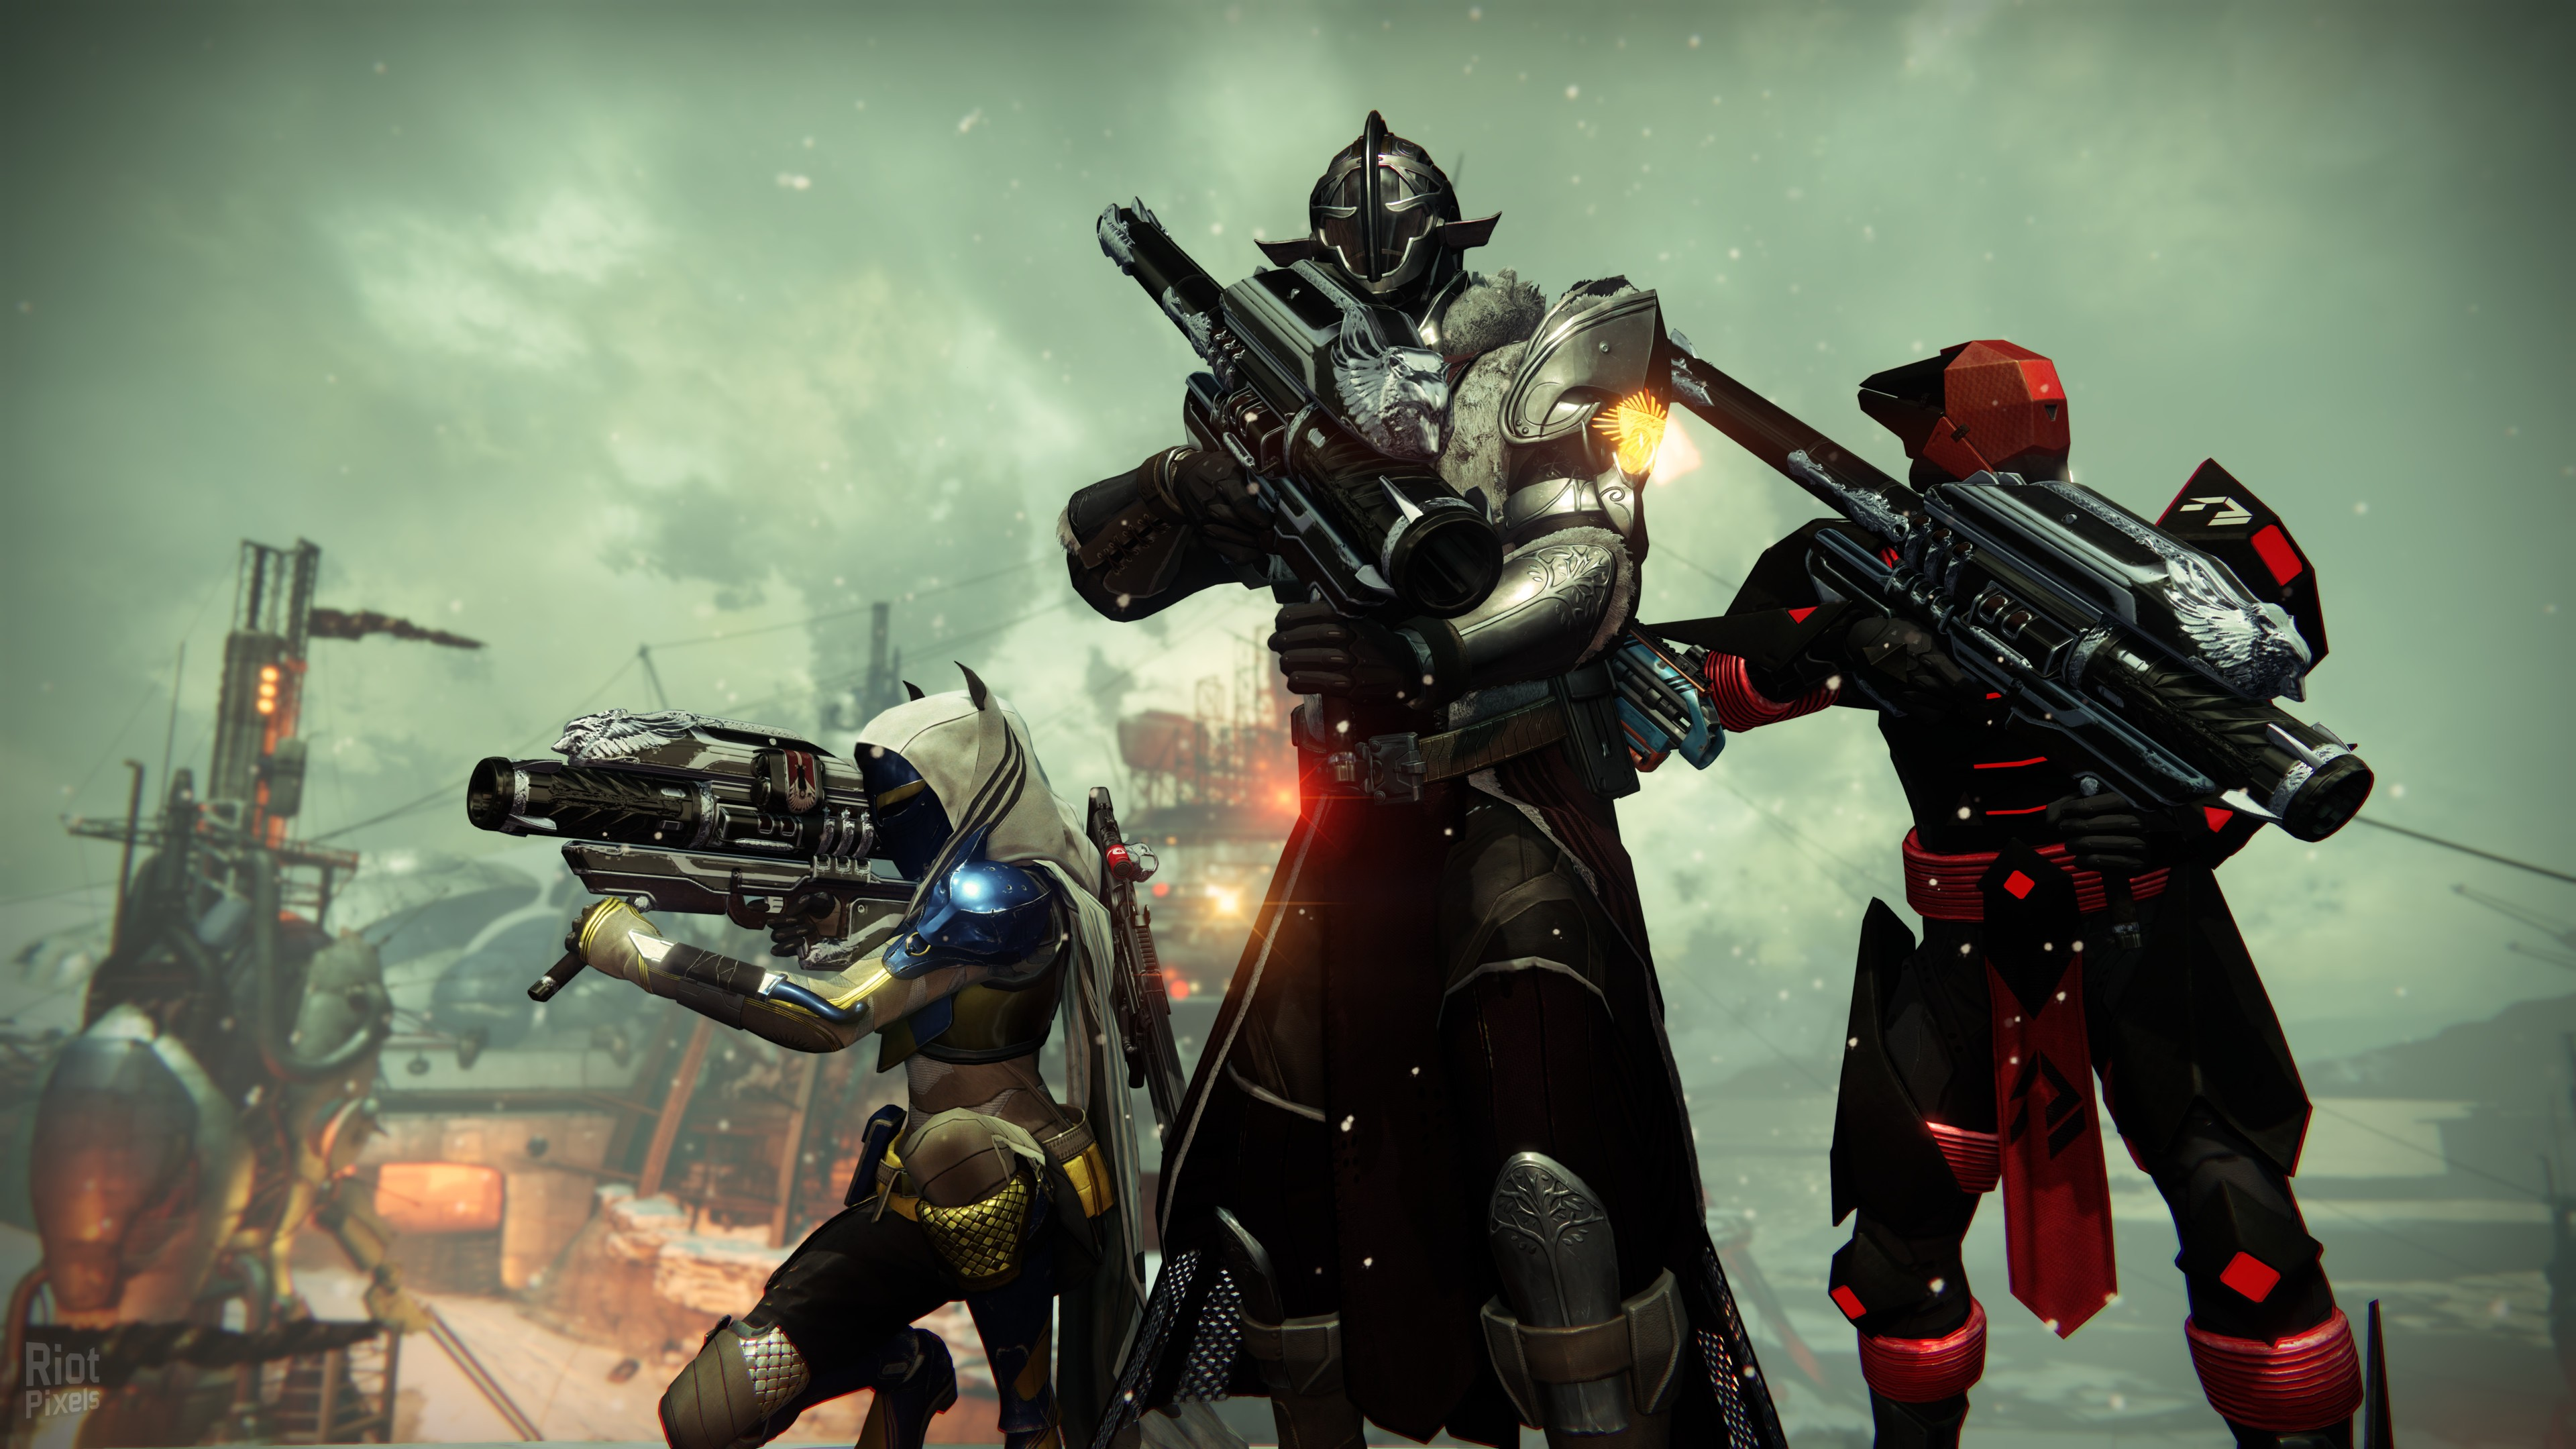 Wallpaper Destiny Rise Of Iron Pc Playstation 3 Playstation 4